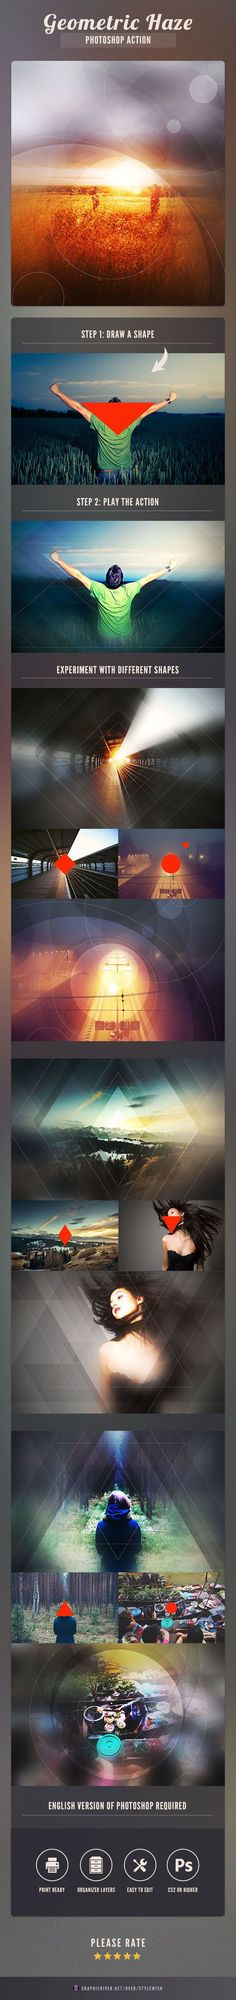 Geometric Haze Photoshop Action #geometric #geometric action #geometry action #geometry effect #modern #$6